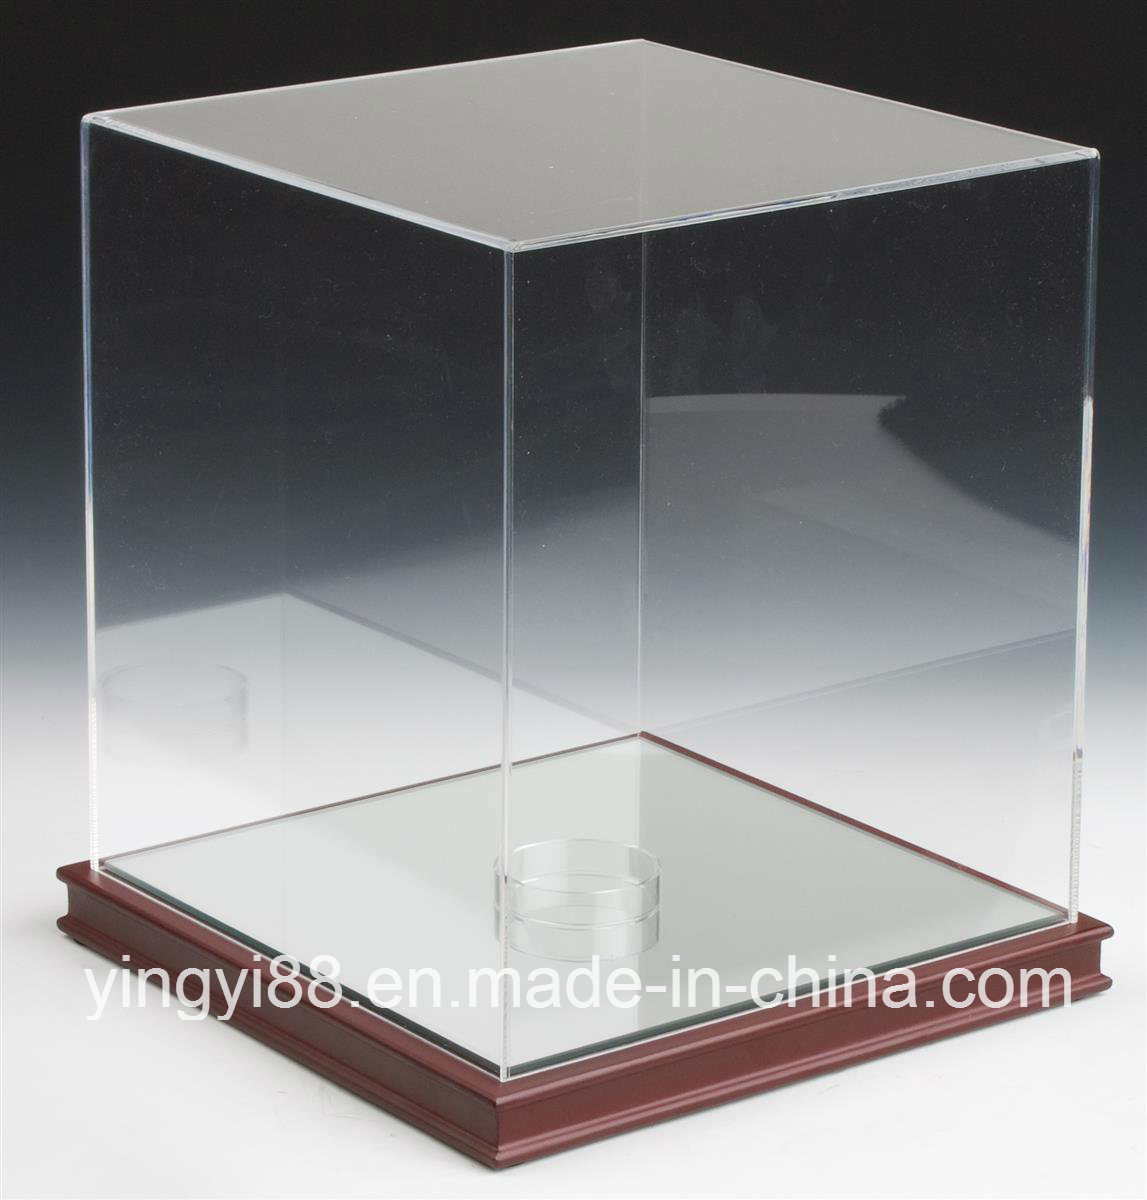 Top Selling Acrylic Display Show Box